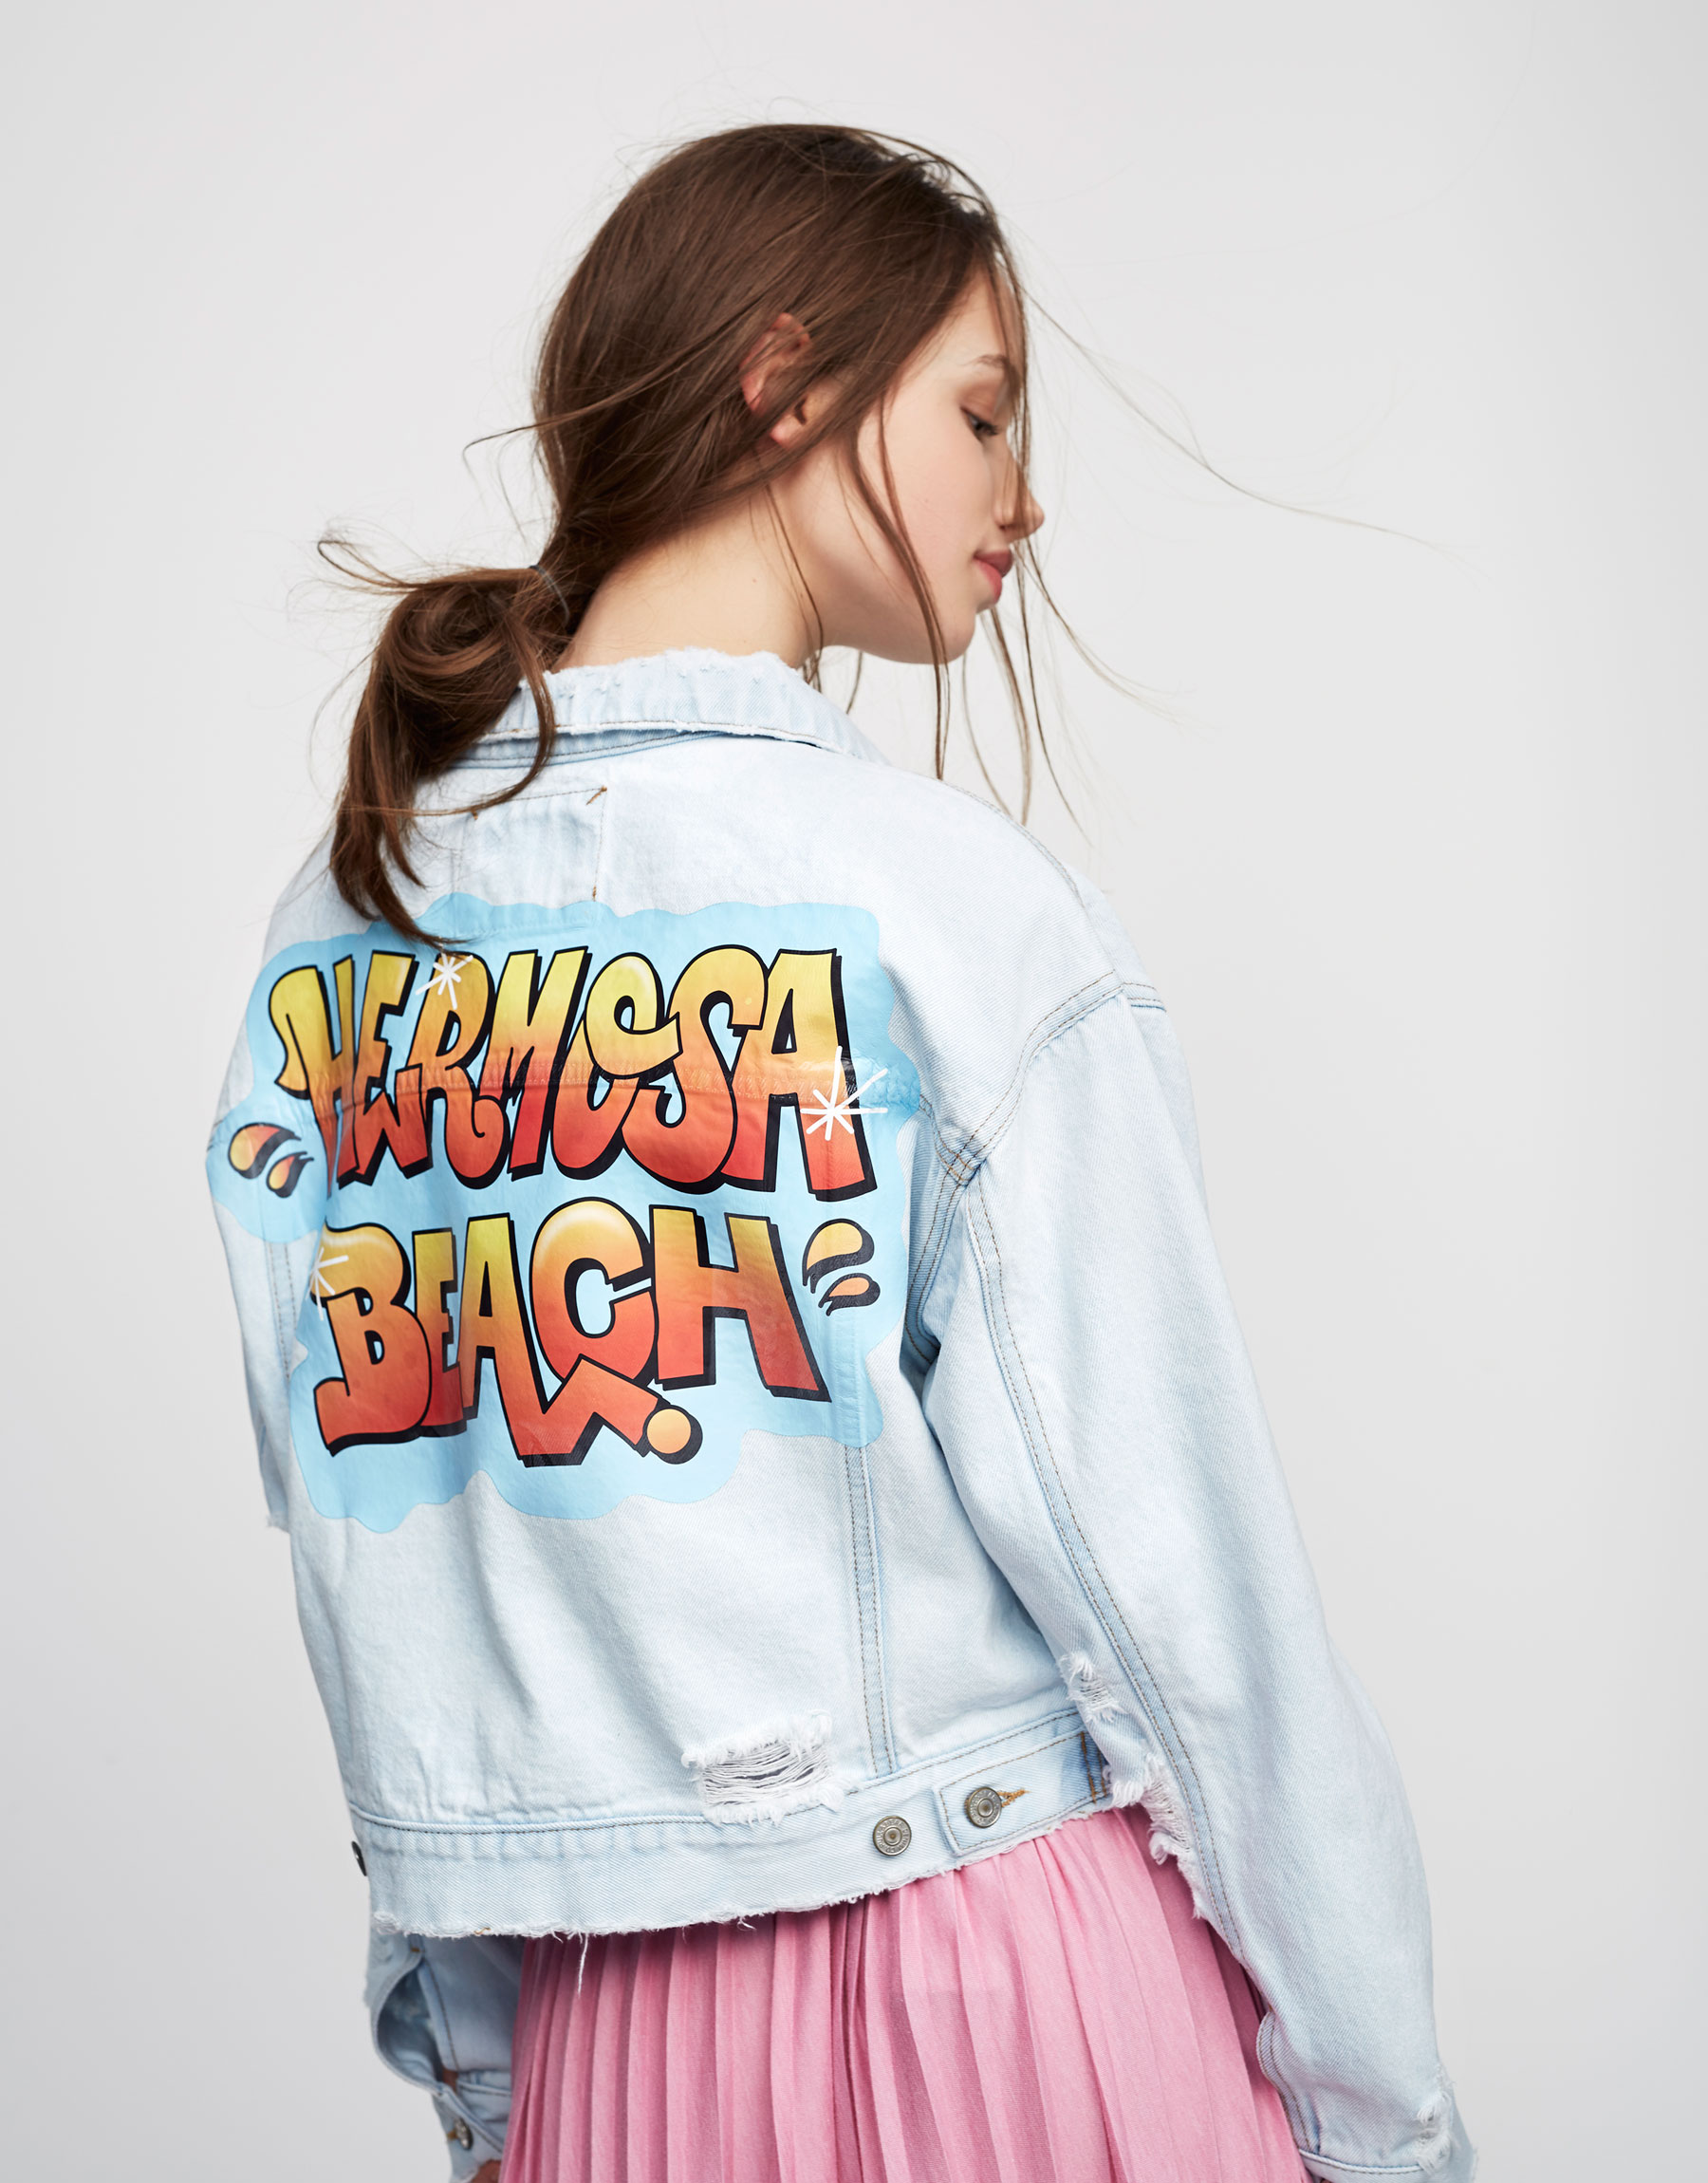 Denim jacket with back graffiti